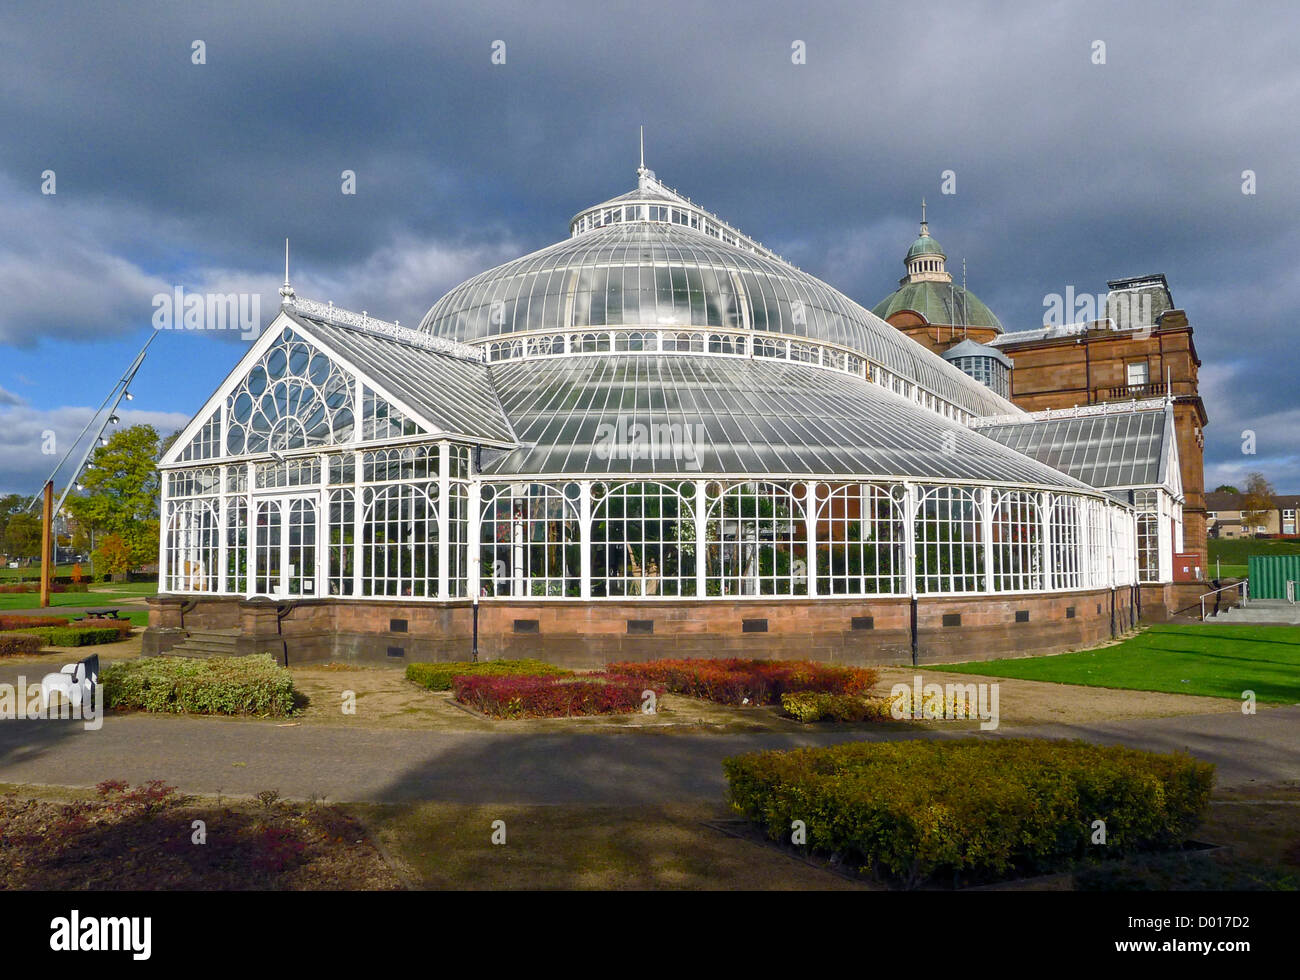 glasgow green About glasgow green, park glasgow, glasgow a photographic glimpse felicity mccullough : situated in the east end of glasgow city, glasgow green is its oldest city park.